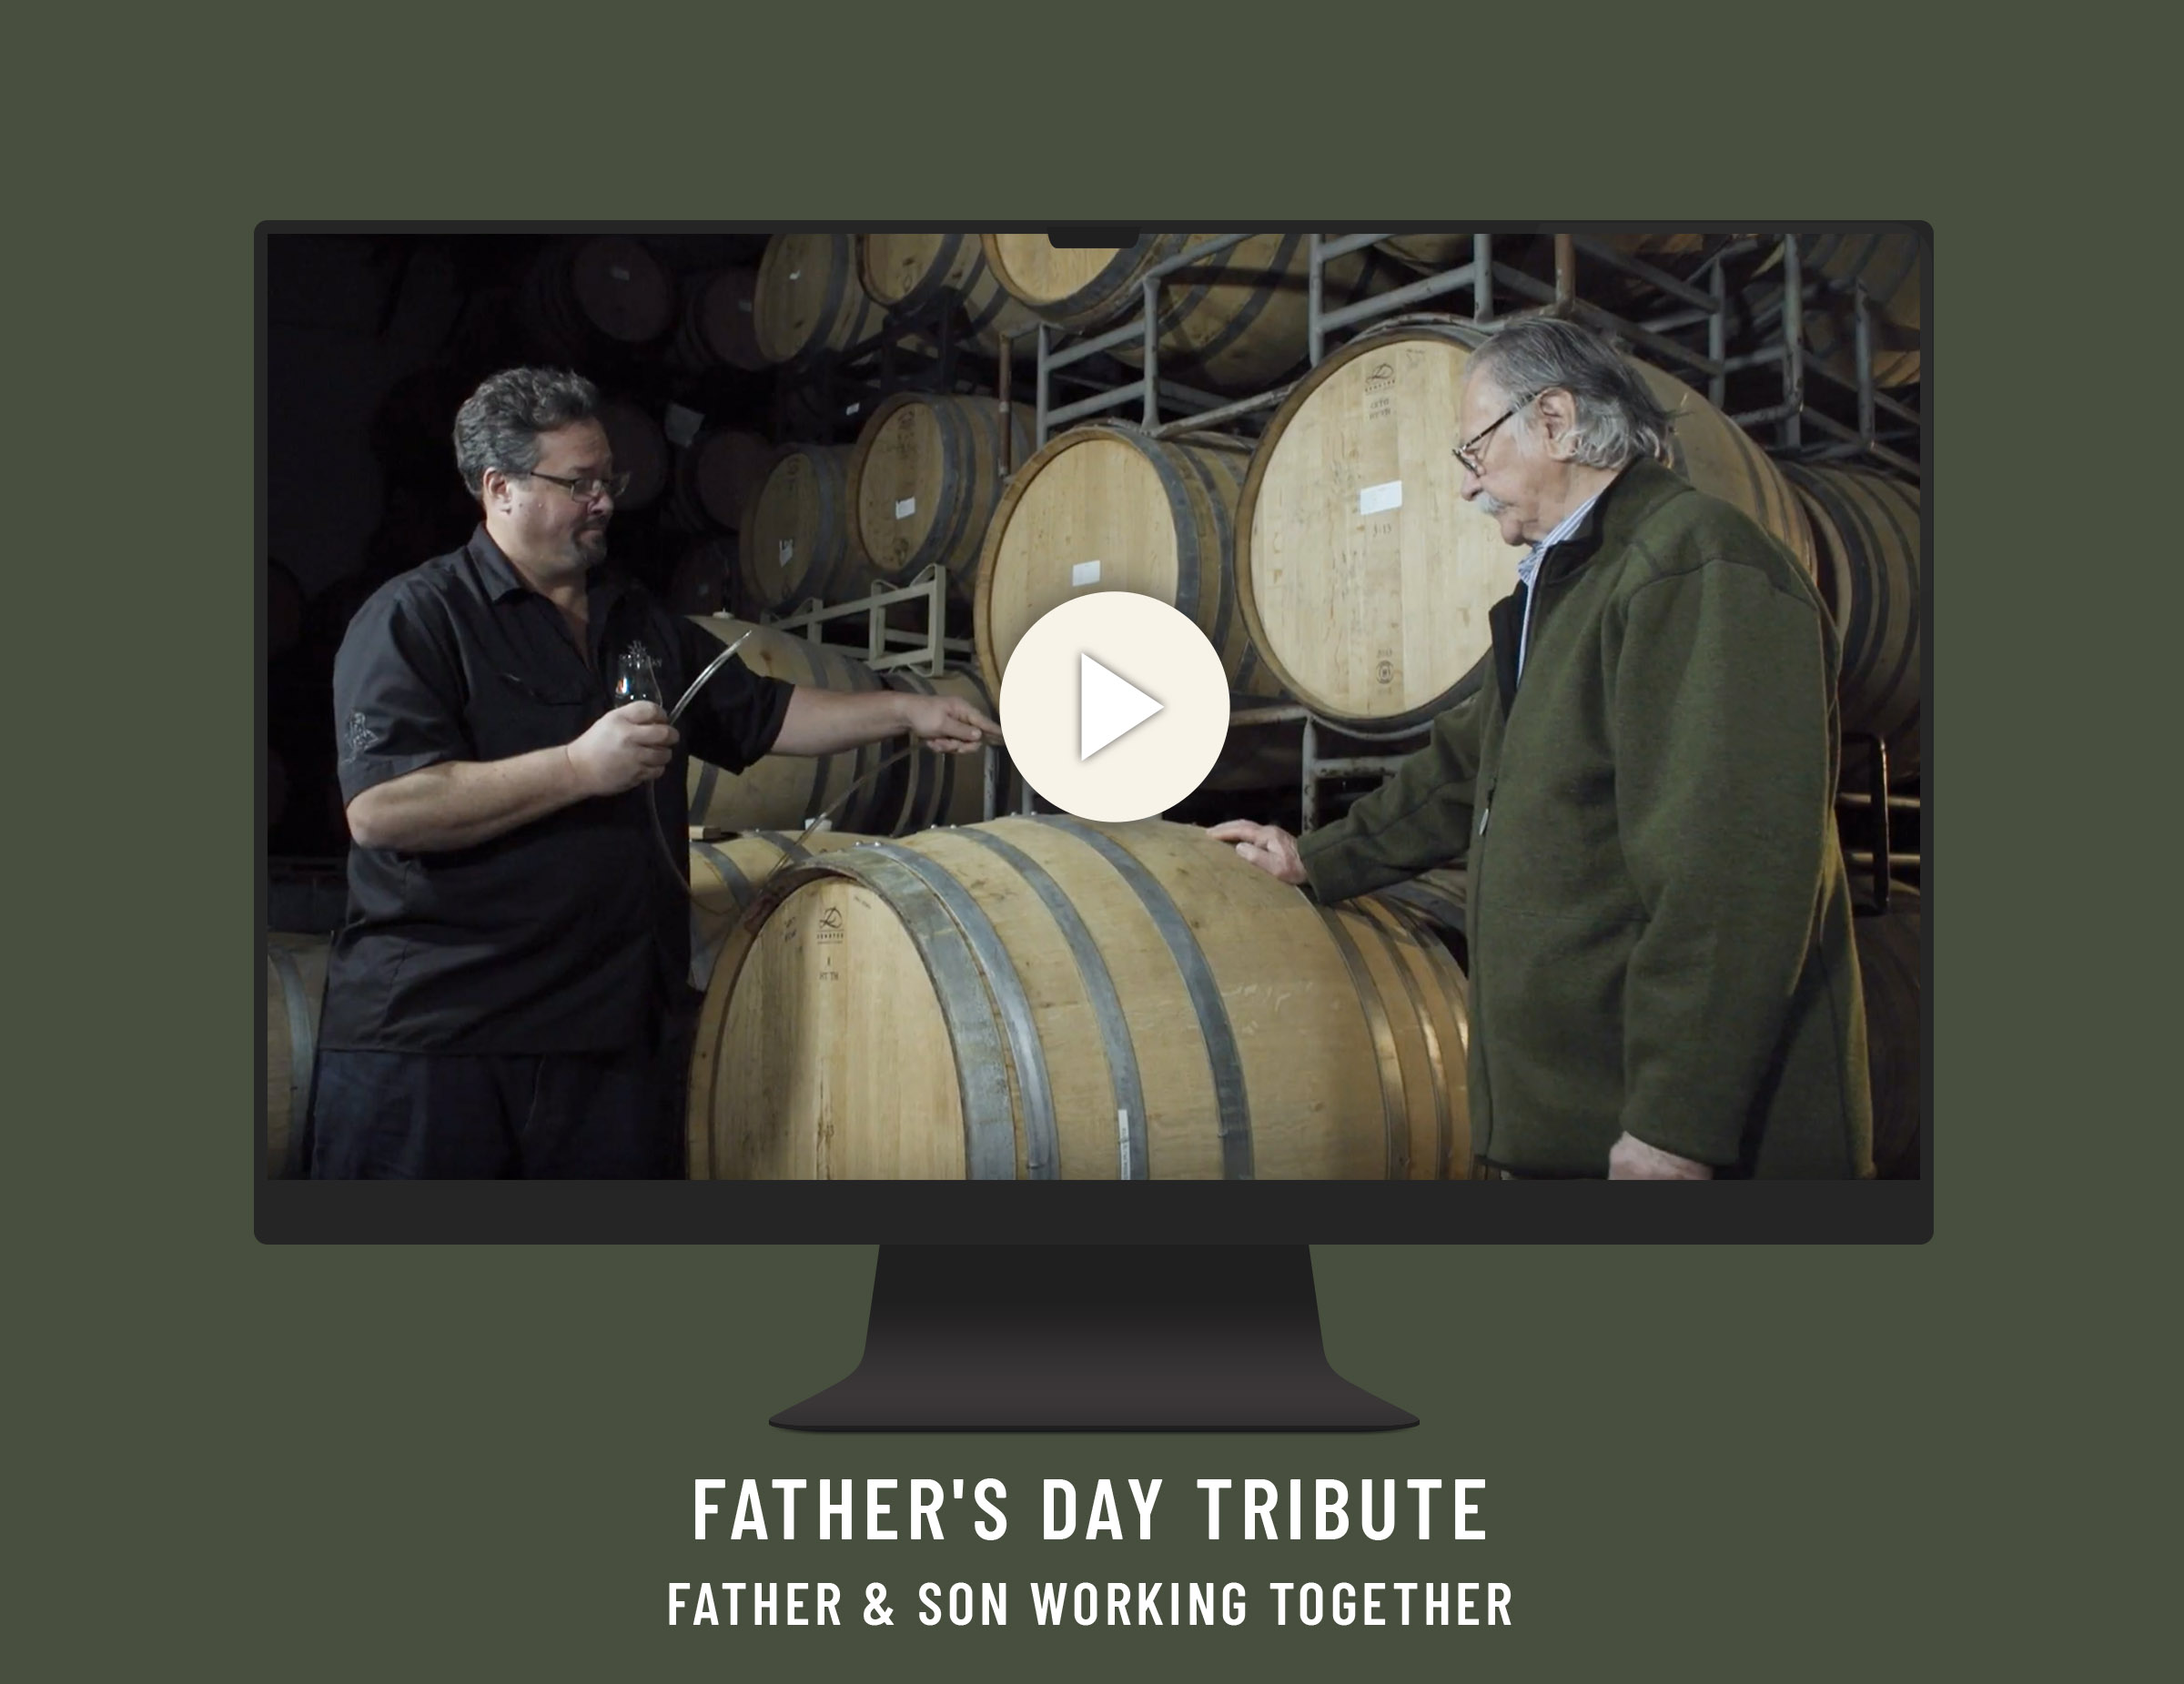 Father's Day Tribute